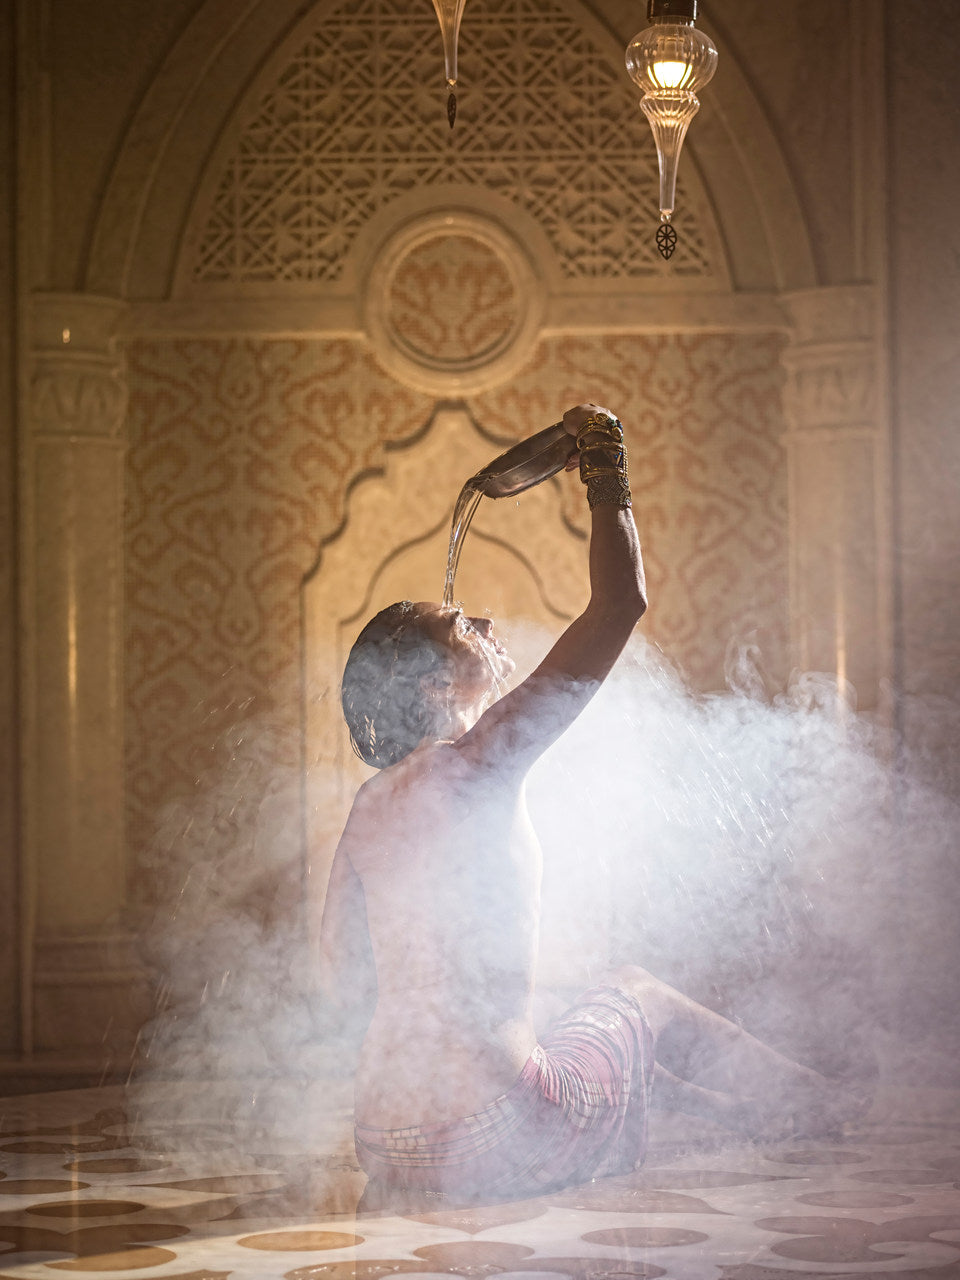 woman in turkish bath